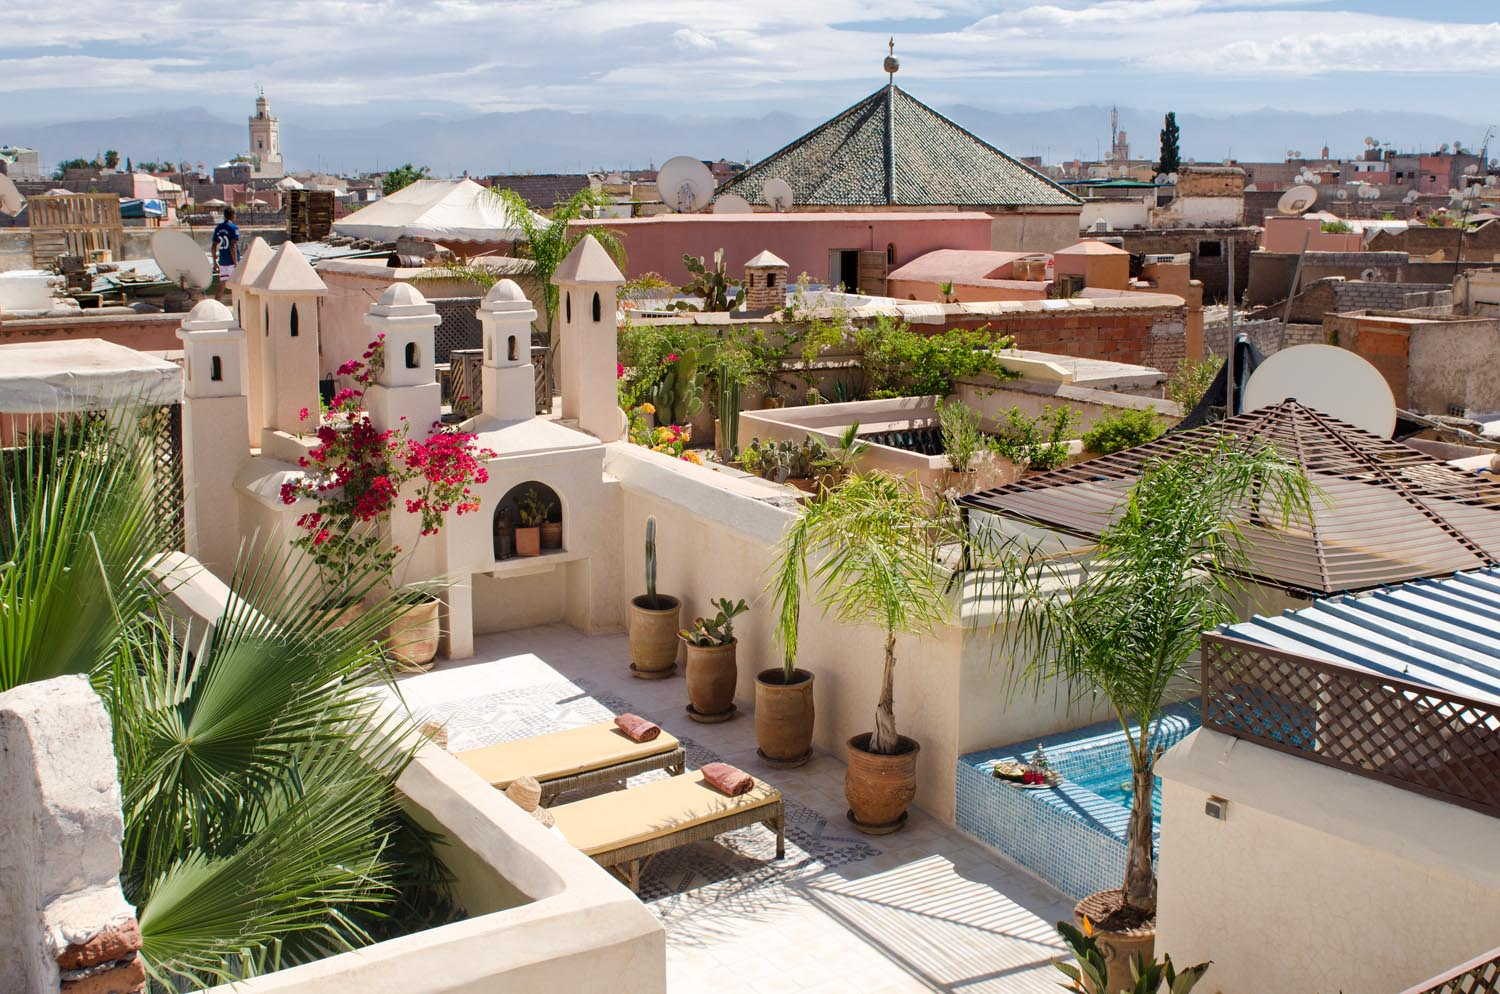 Riad vert luxury riad in marrakech morocco book riad for Top 10 riads in marrakech